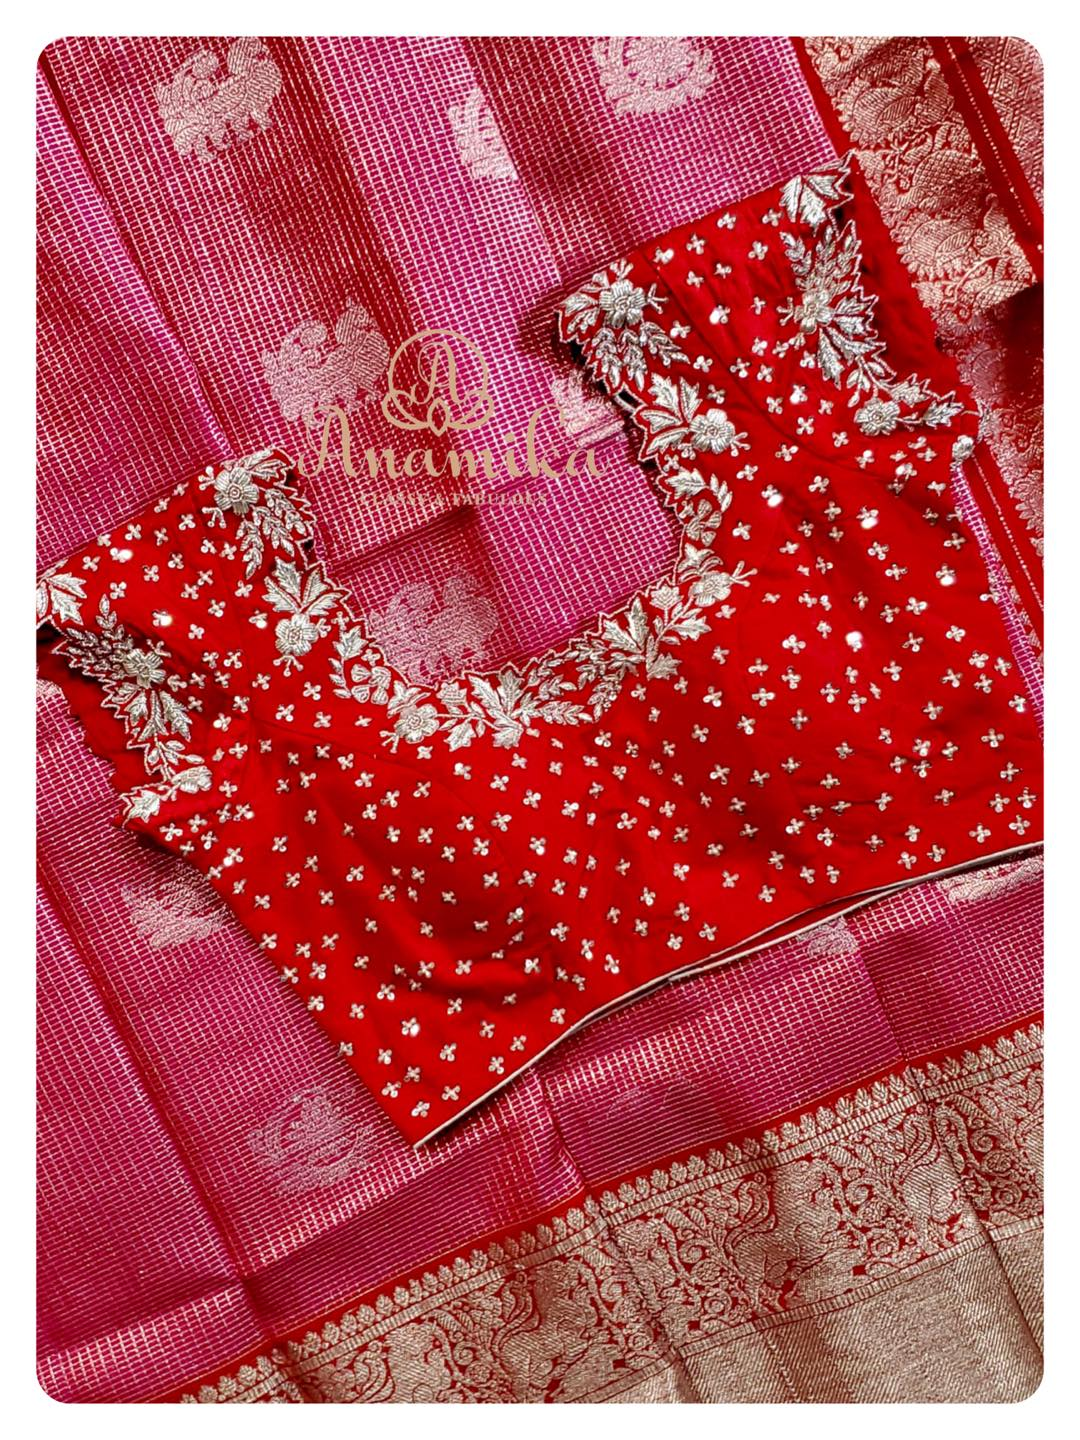 Few colors remain to be an all-time favorite - Pink/Red in silk saree is one such combination !! ❤️ Stand out beautiful in this enticing pink/red combo venkatagiri pattu saree - adorned with all over zari woven buttis and zari lines a rich and royal pallu and border.  Paired with a red hand work blouse with silver emboridery; this sure is another stunner.  A Must-Have color in your wardrobe for the upcoming festival season !!